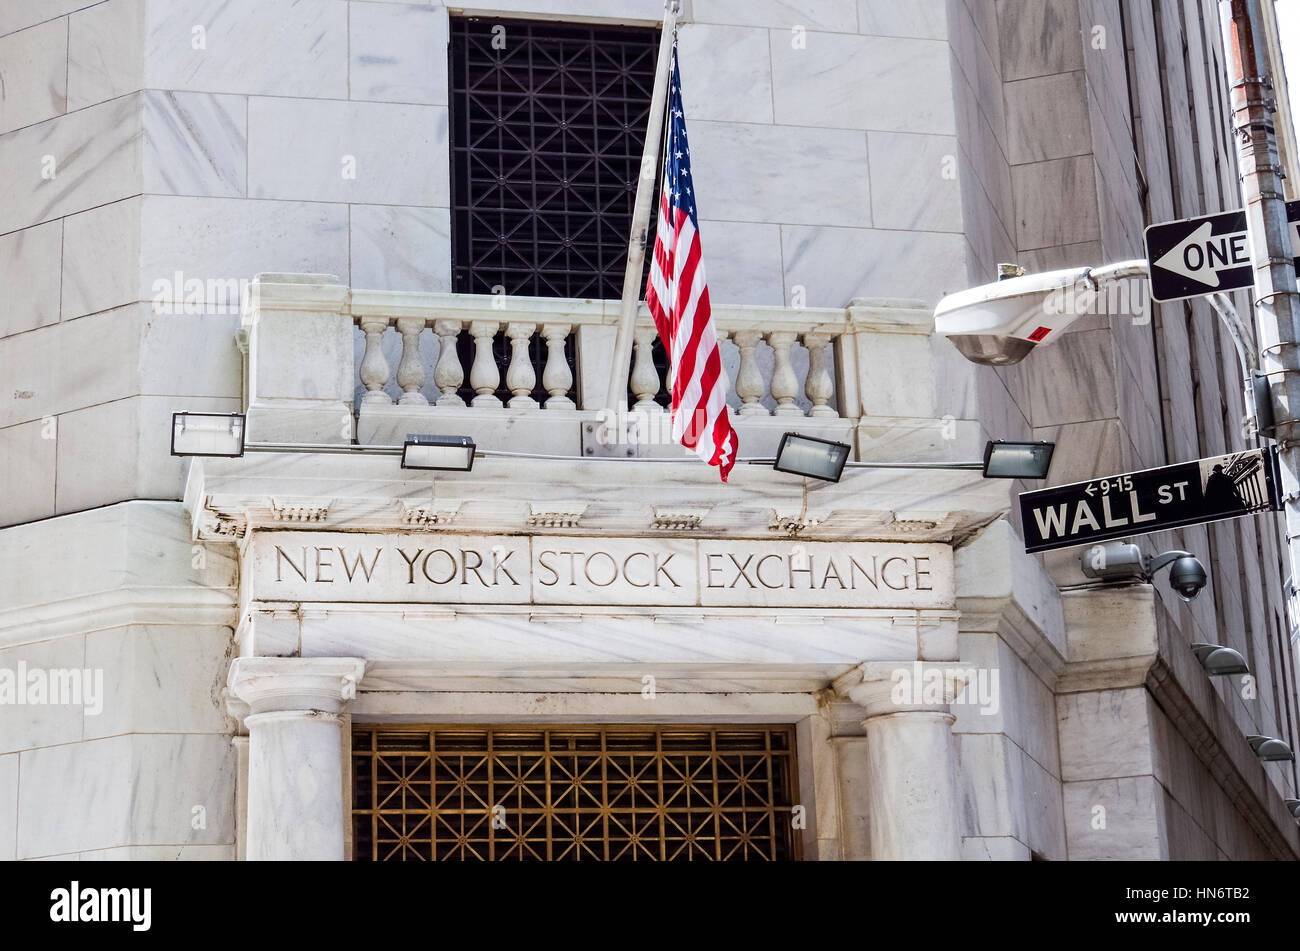 New York, USA - June 18, 2016: New York Stock Exchange with American flags and Wall street sign - Stock Image